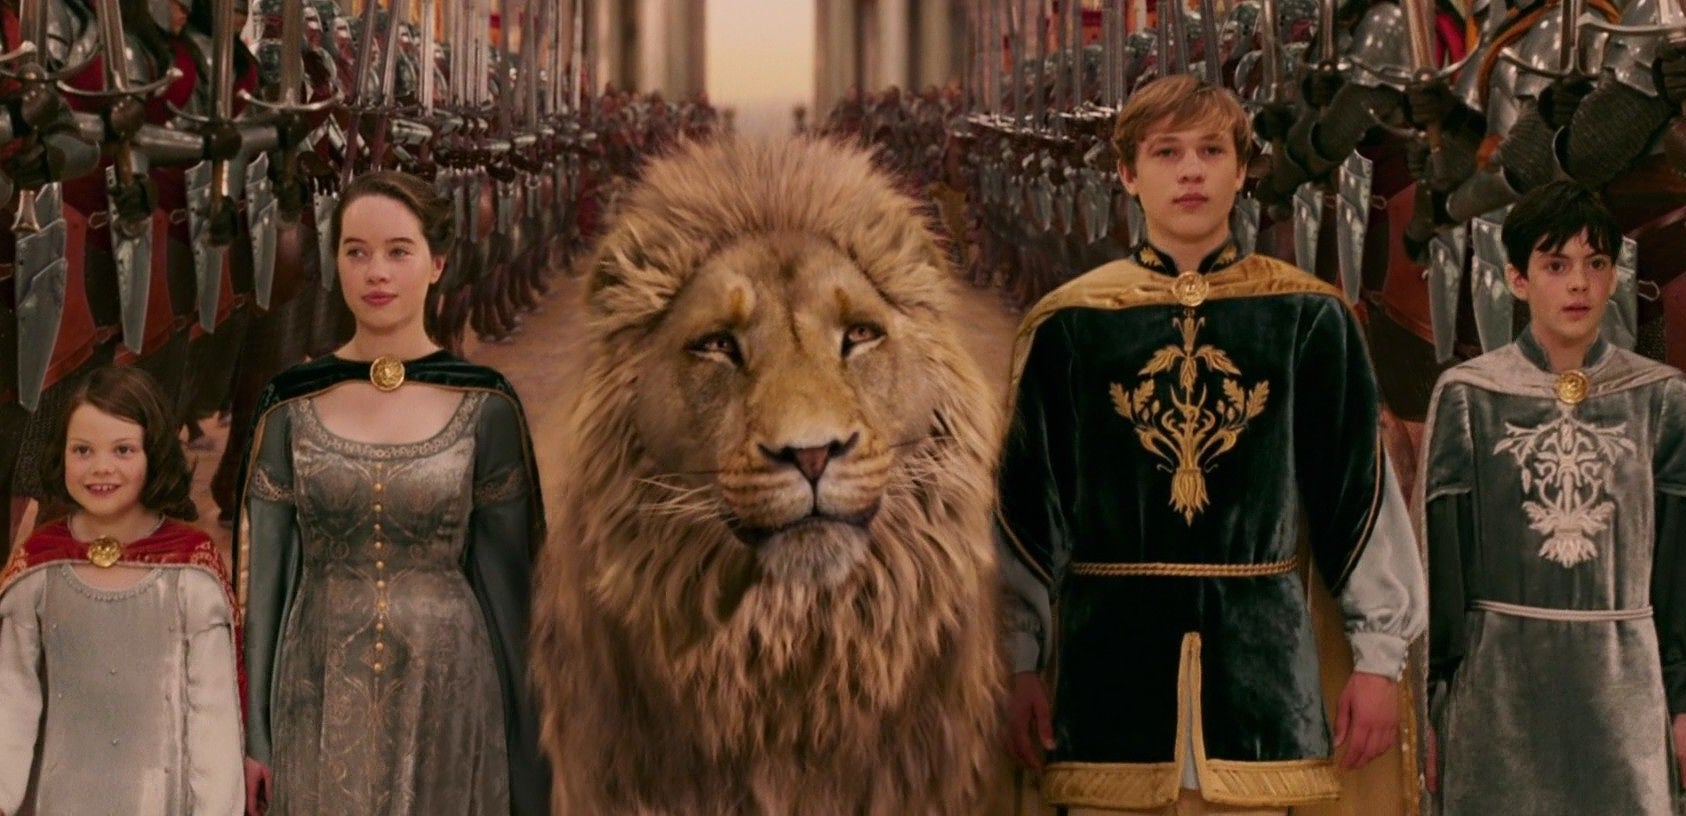 The silver chair bbc - Narnia Franchise To Be Rebooted With Fourth Movie The Silver Chair